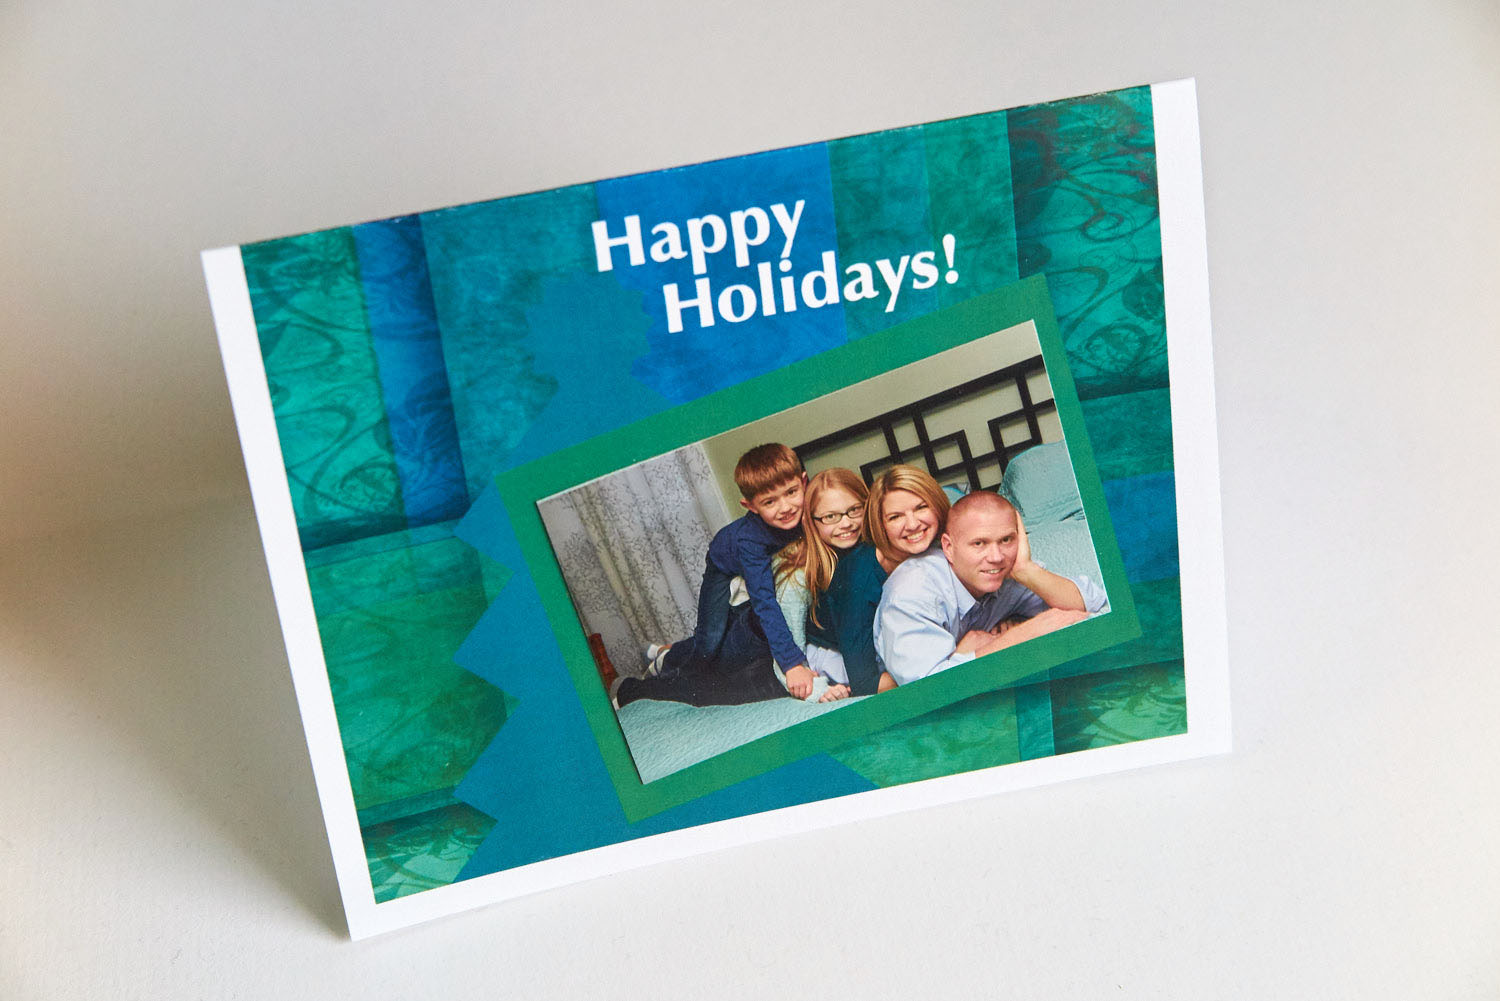 Here is a sample card with a photo attached to it